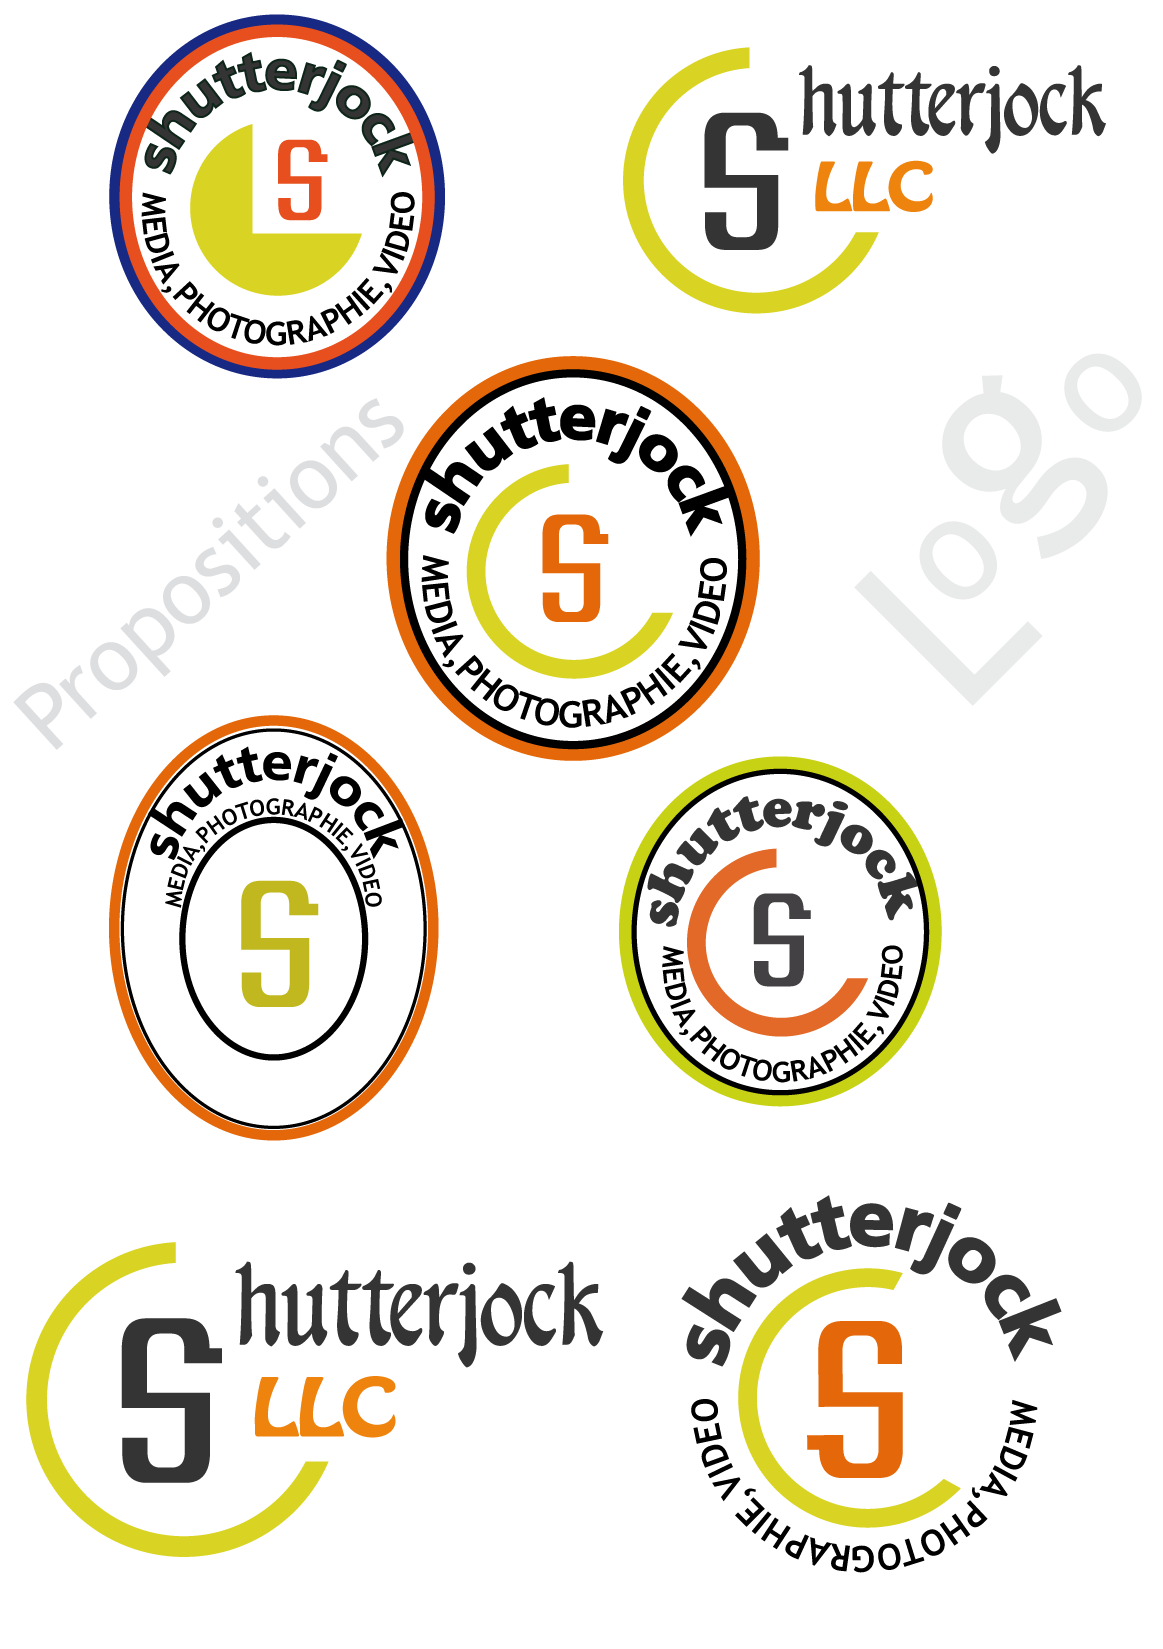 Logo Design by Smartweb - Entry No. 115 in the Logo Design Contest Unique Logo Design Wanted for Shutterjock LLC.